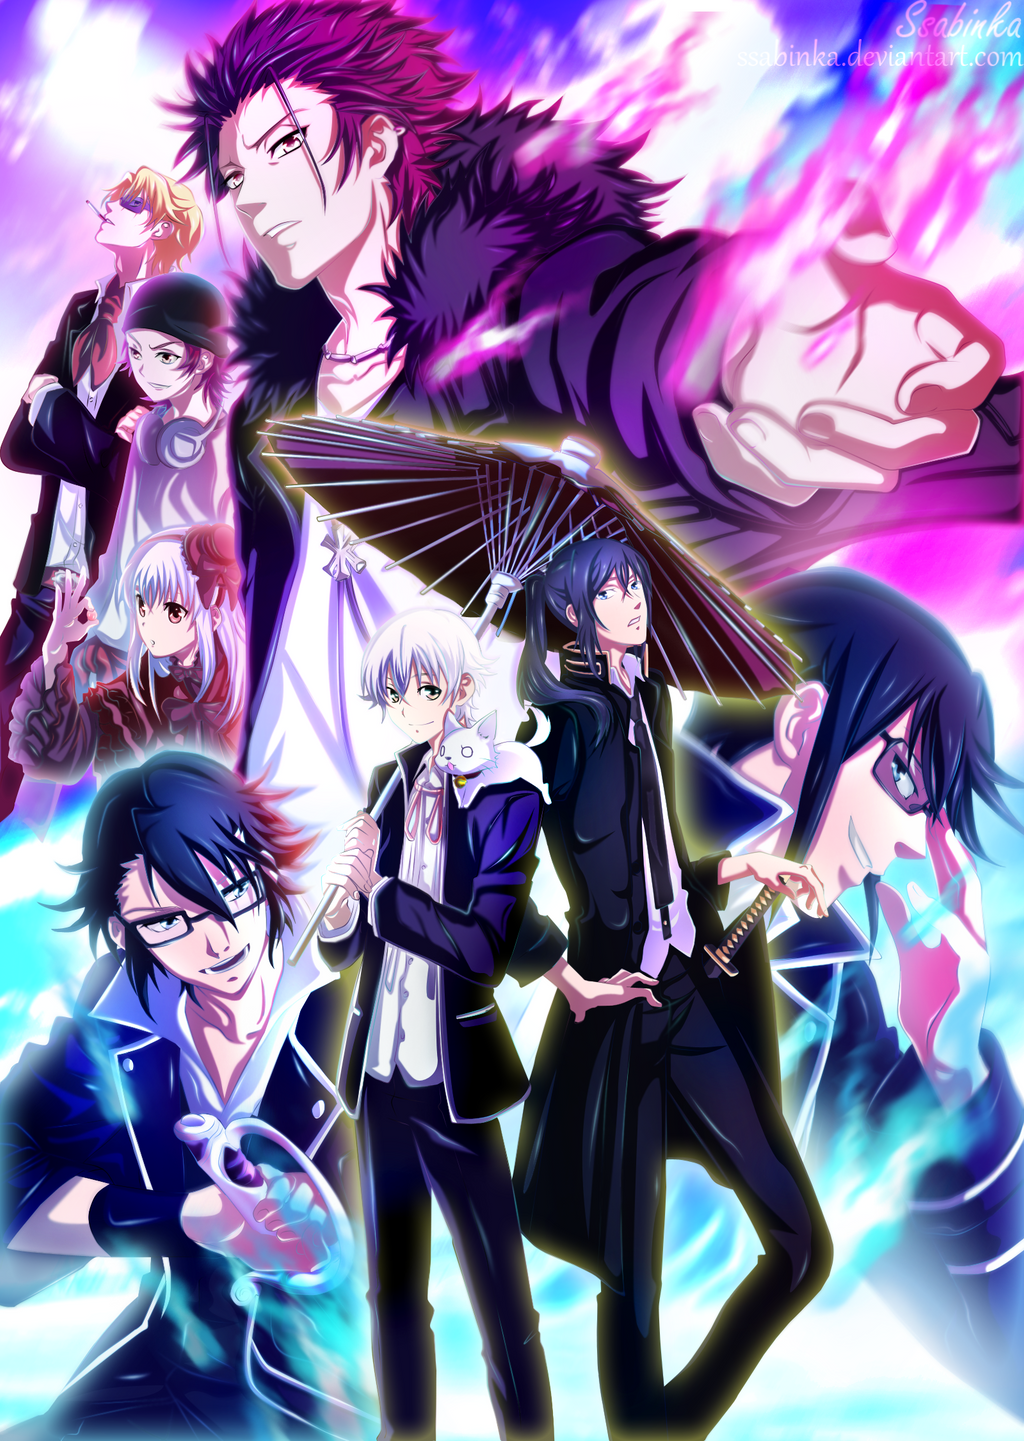 Anime Characters That Start With C : K project favourites by michinekochan on deviantart